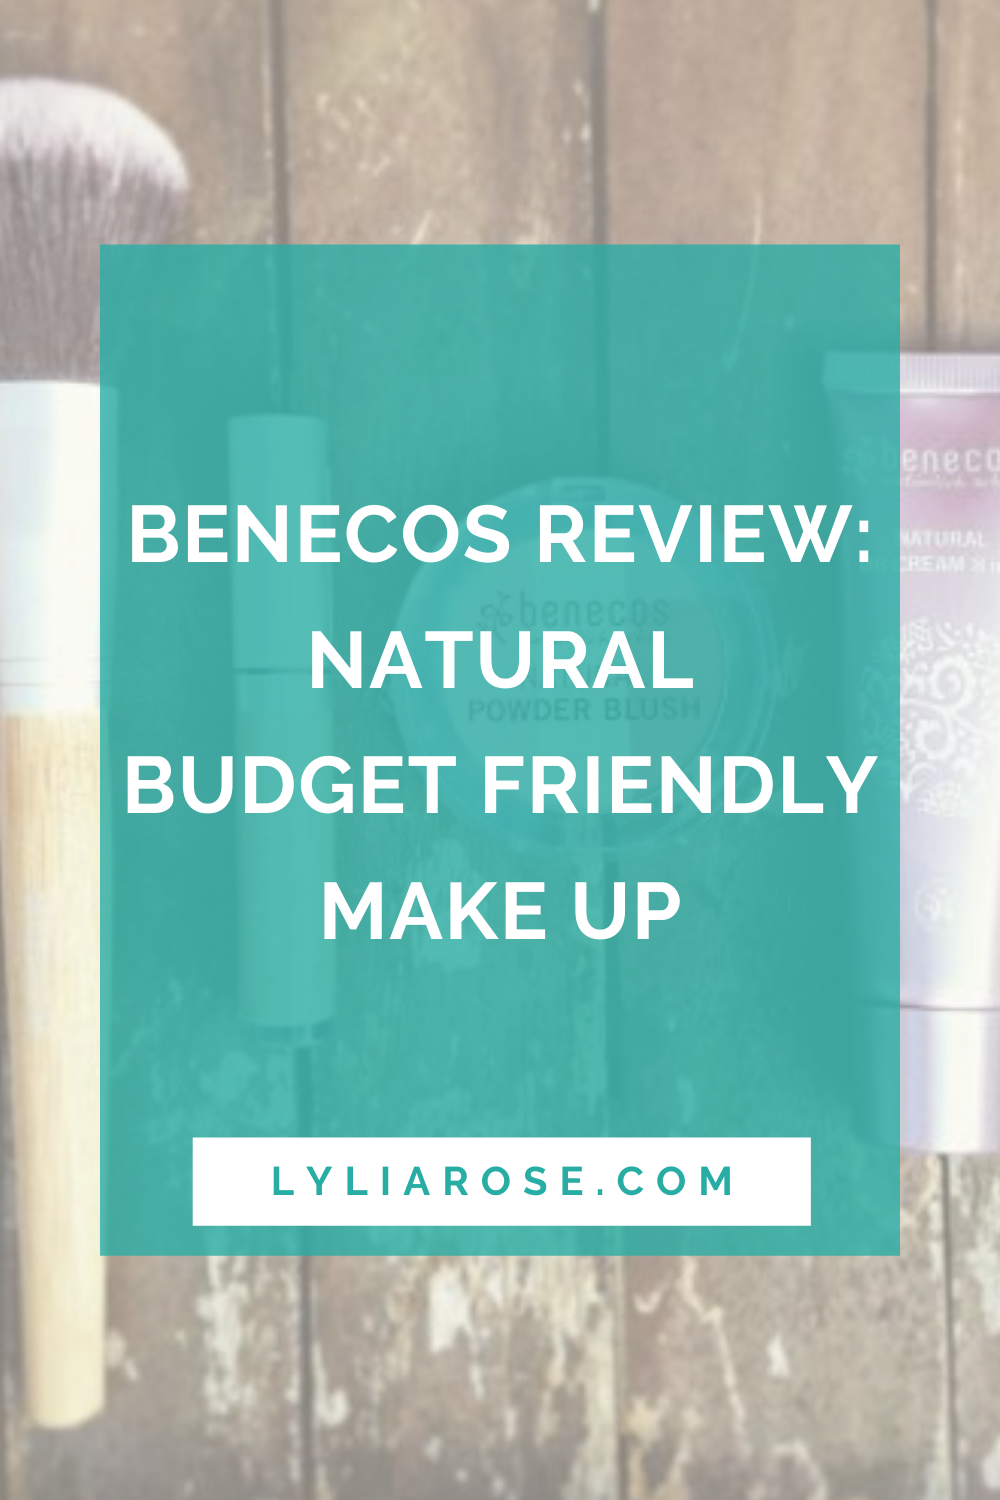 Benecos review _ natural + budget friendly make up (2)